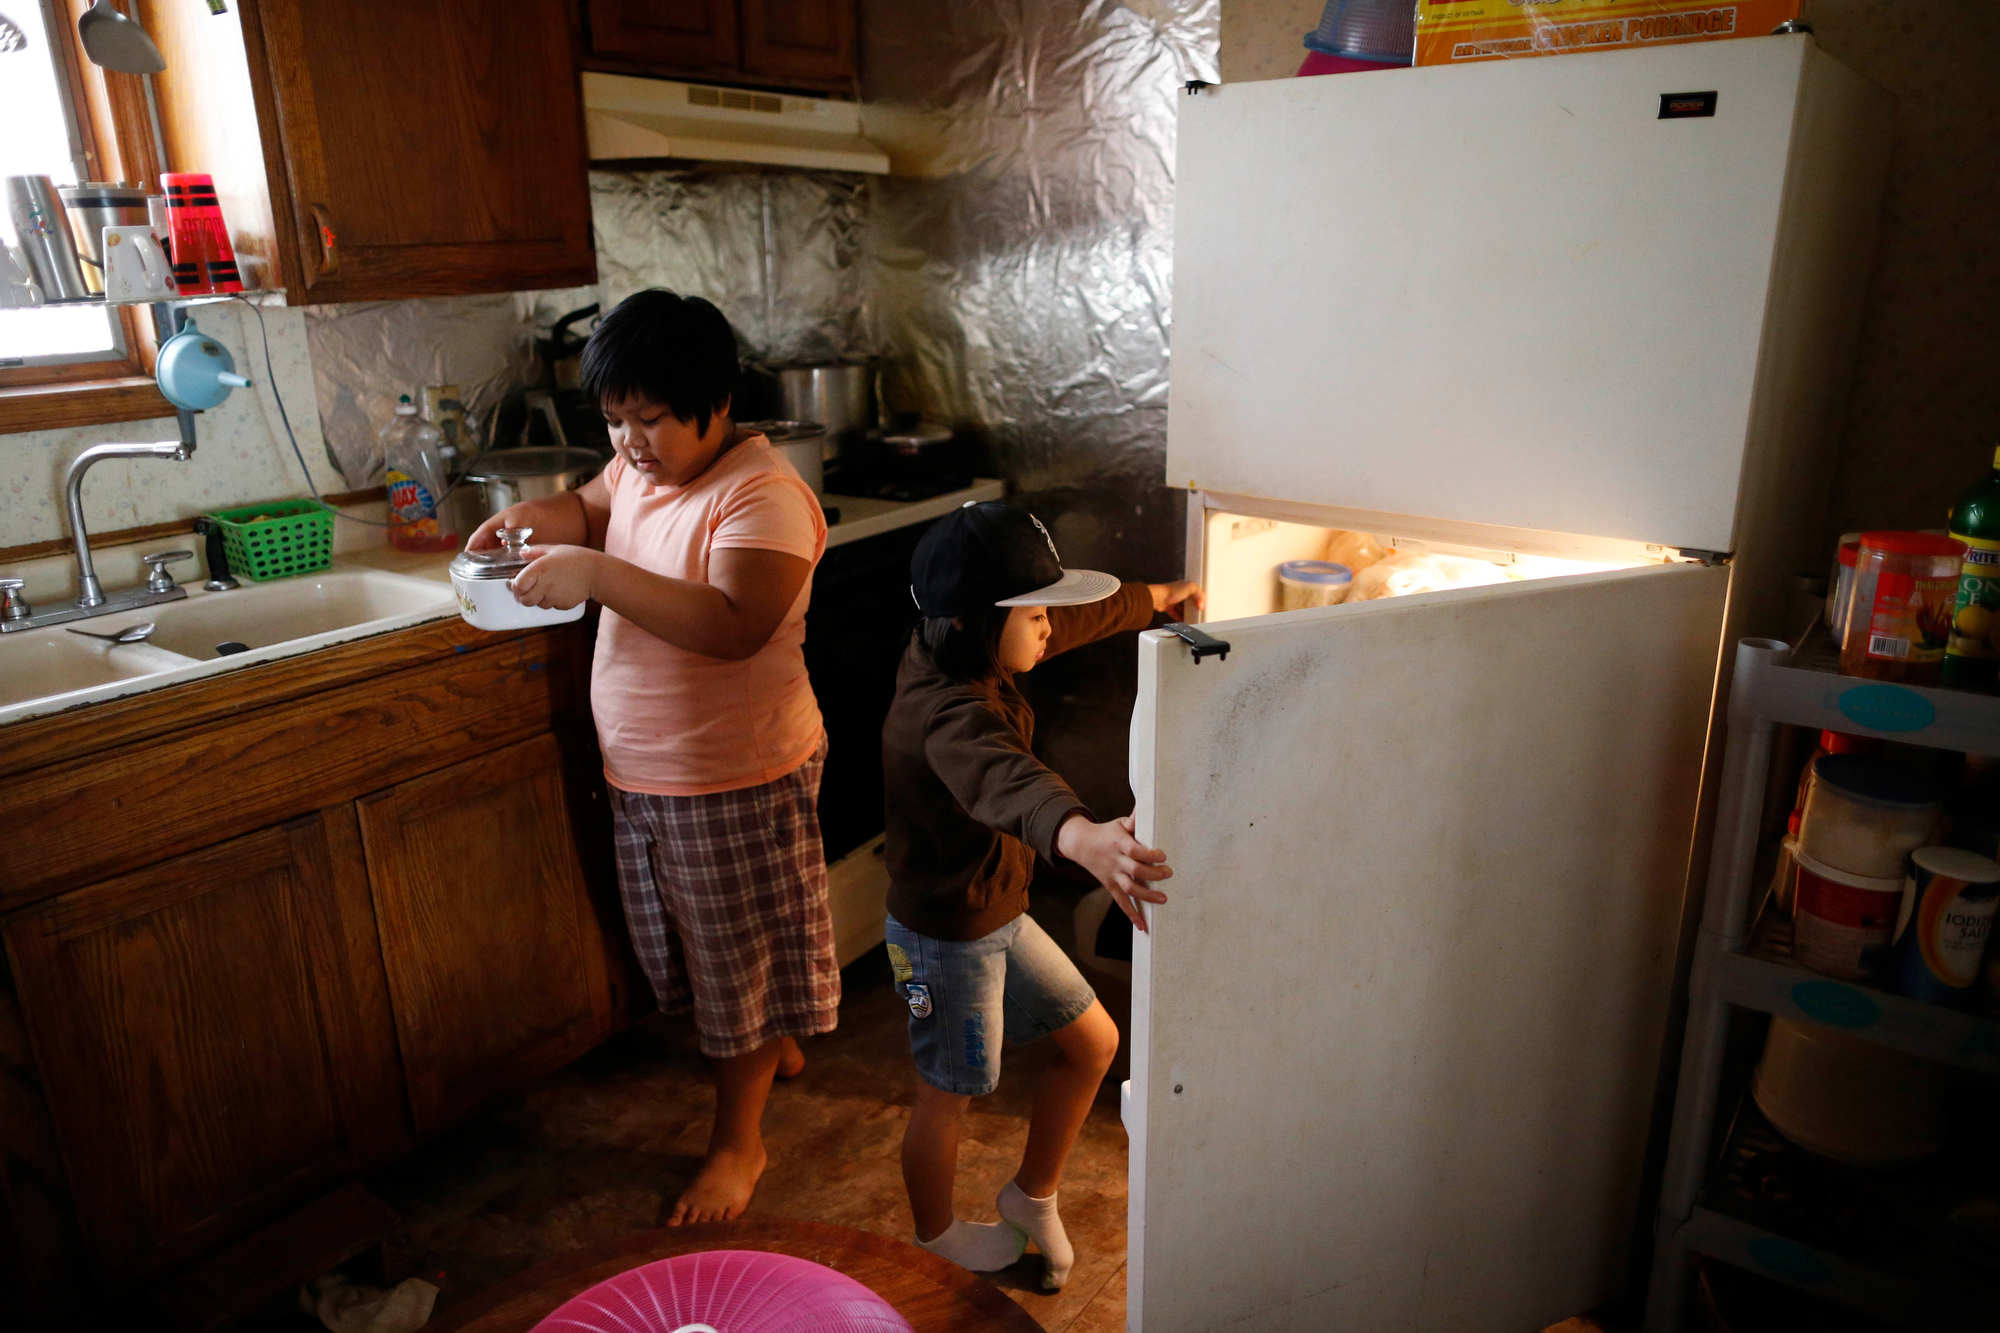 Pra Ah, 9, and Paw Eh Lar Say, 5, children of Htay Beh, a refugee from Burma, help themselves to food in the kitchen of their Riverside home on Nov. 15, 2015. (Derek Gee/Buffalo News)